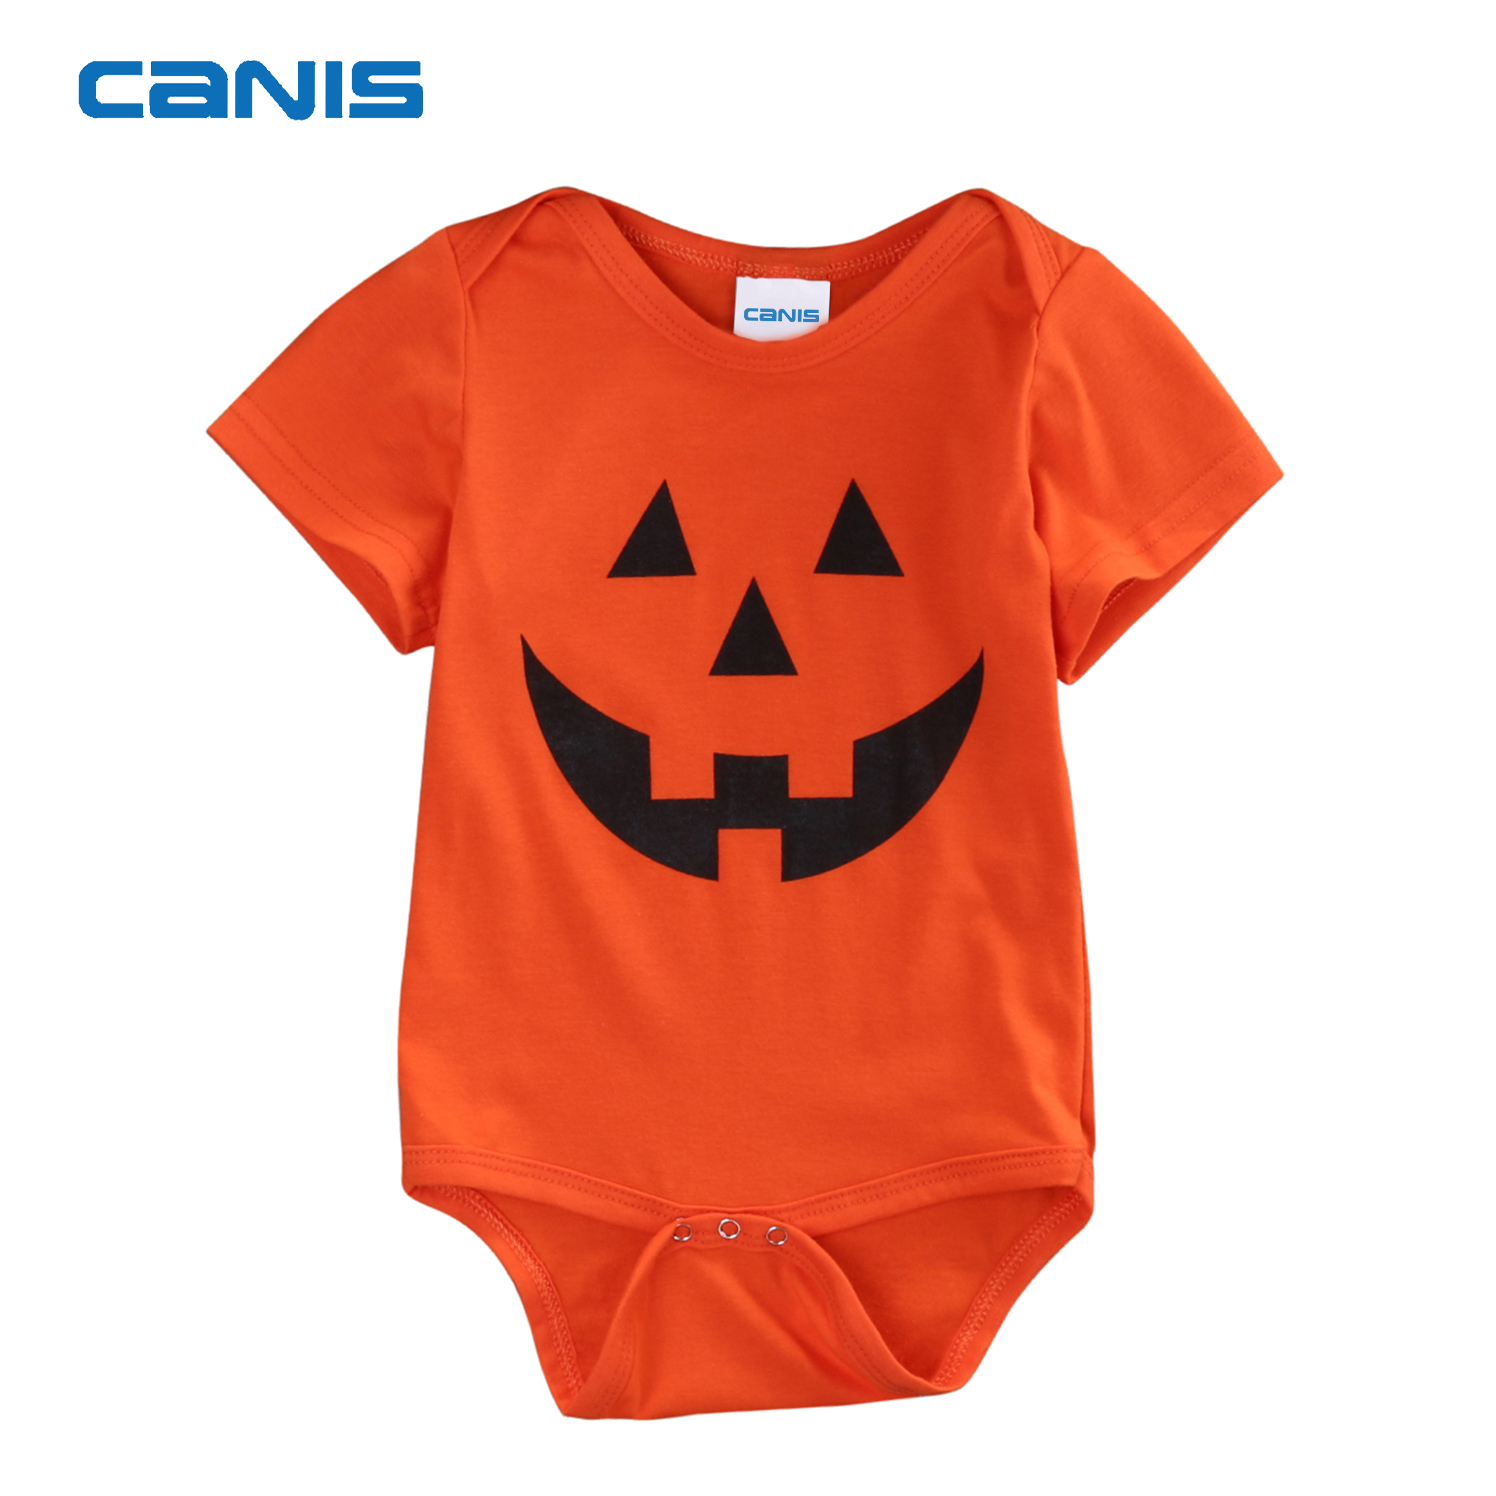 Toddler Baby Boy Girl Short Sleeve Jumpsuit Halloween Pumpkin Infant Short Sleeve Romper Jumpsuit